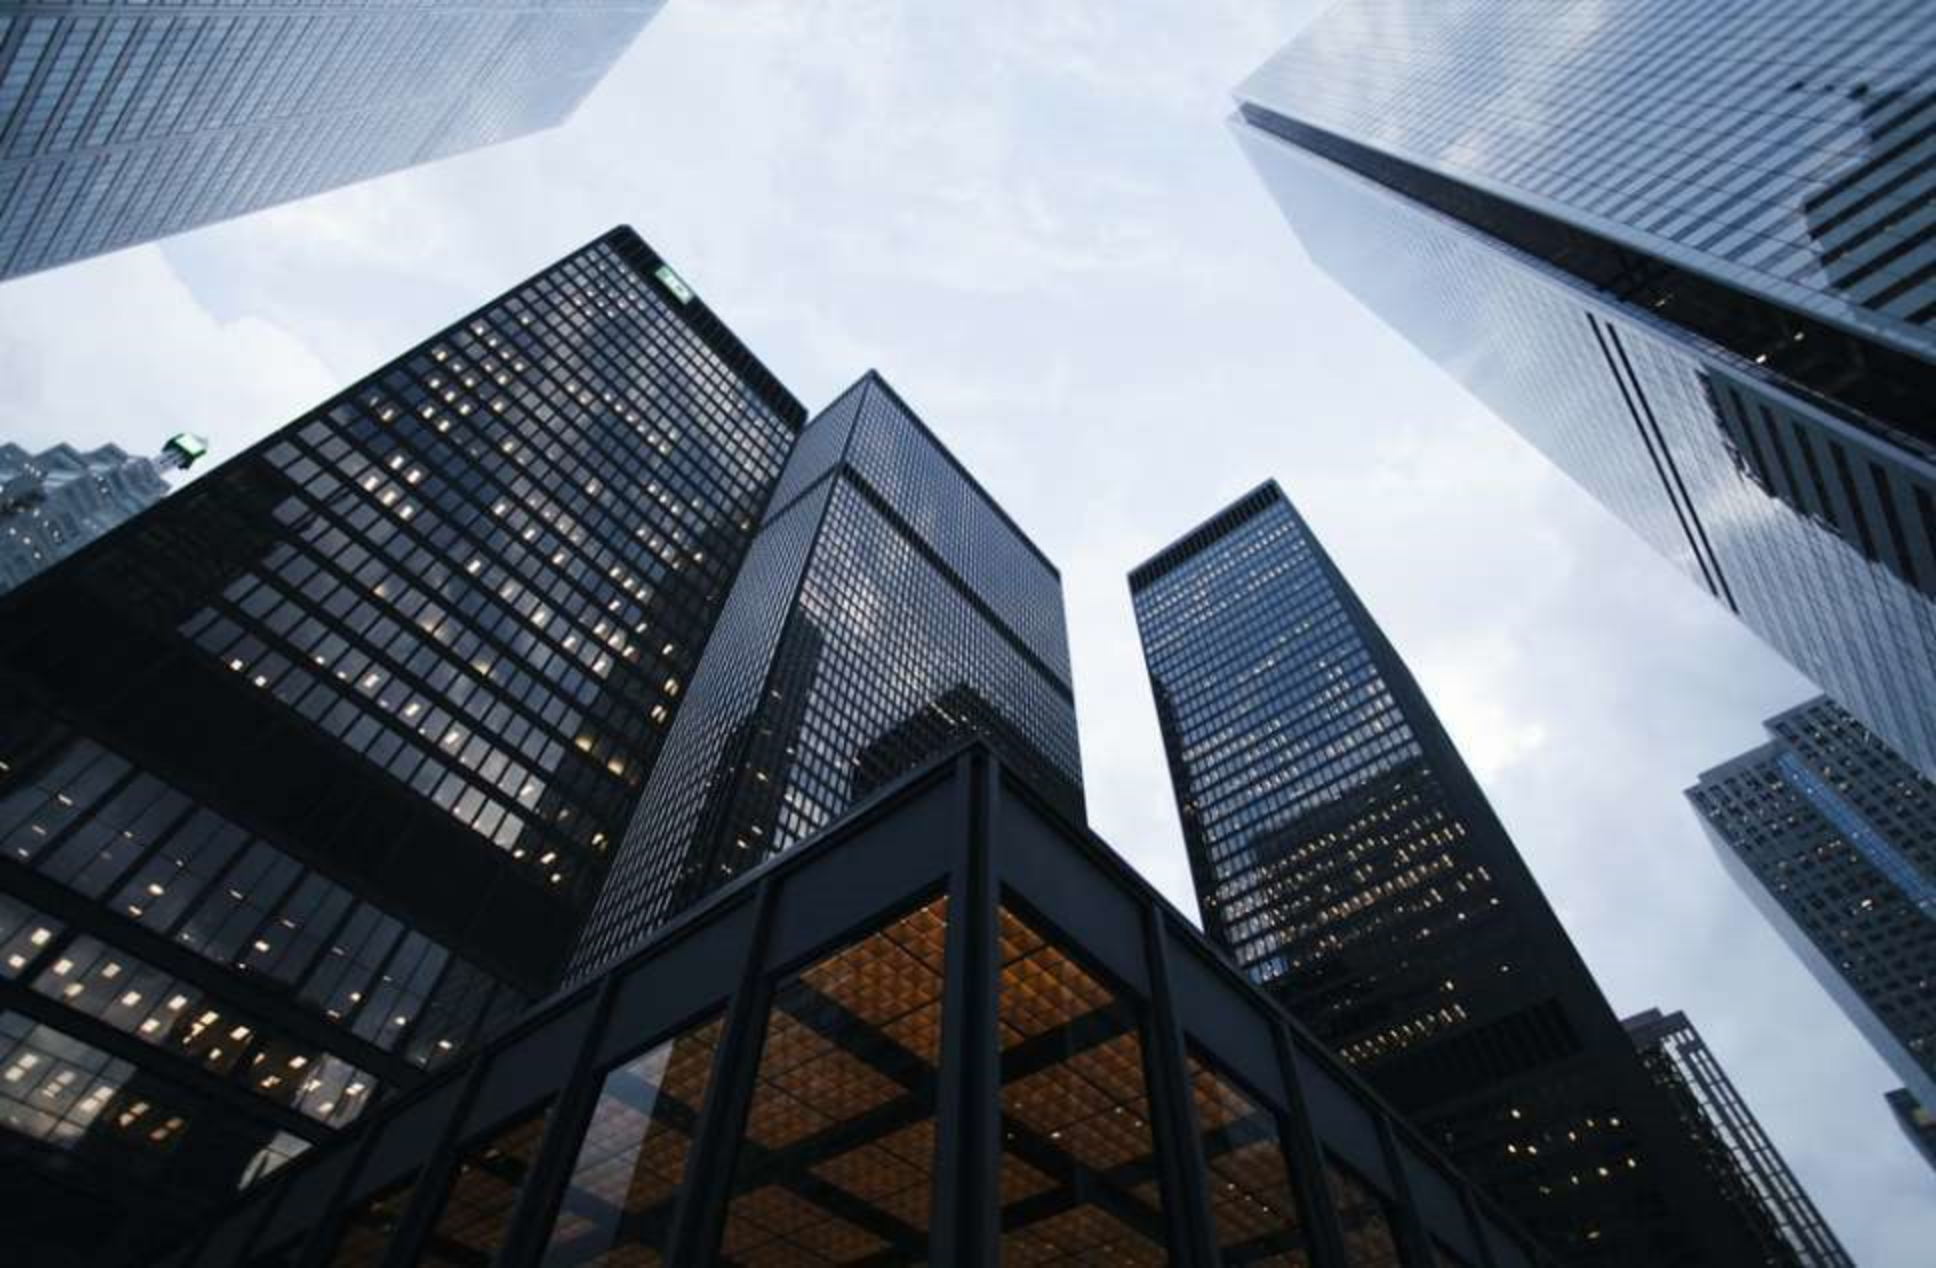 Introductory image showing tall buildings